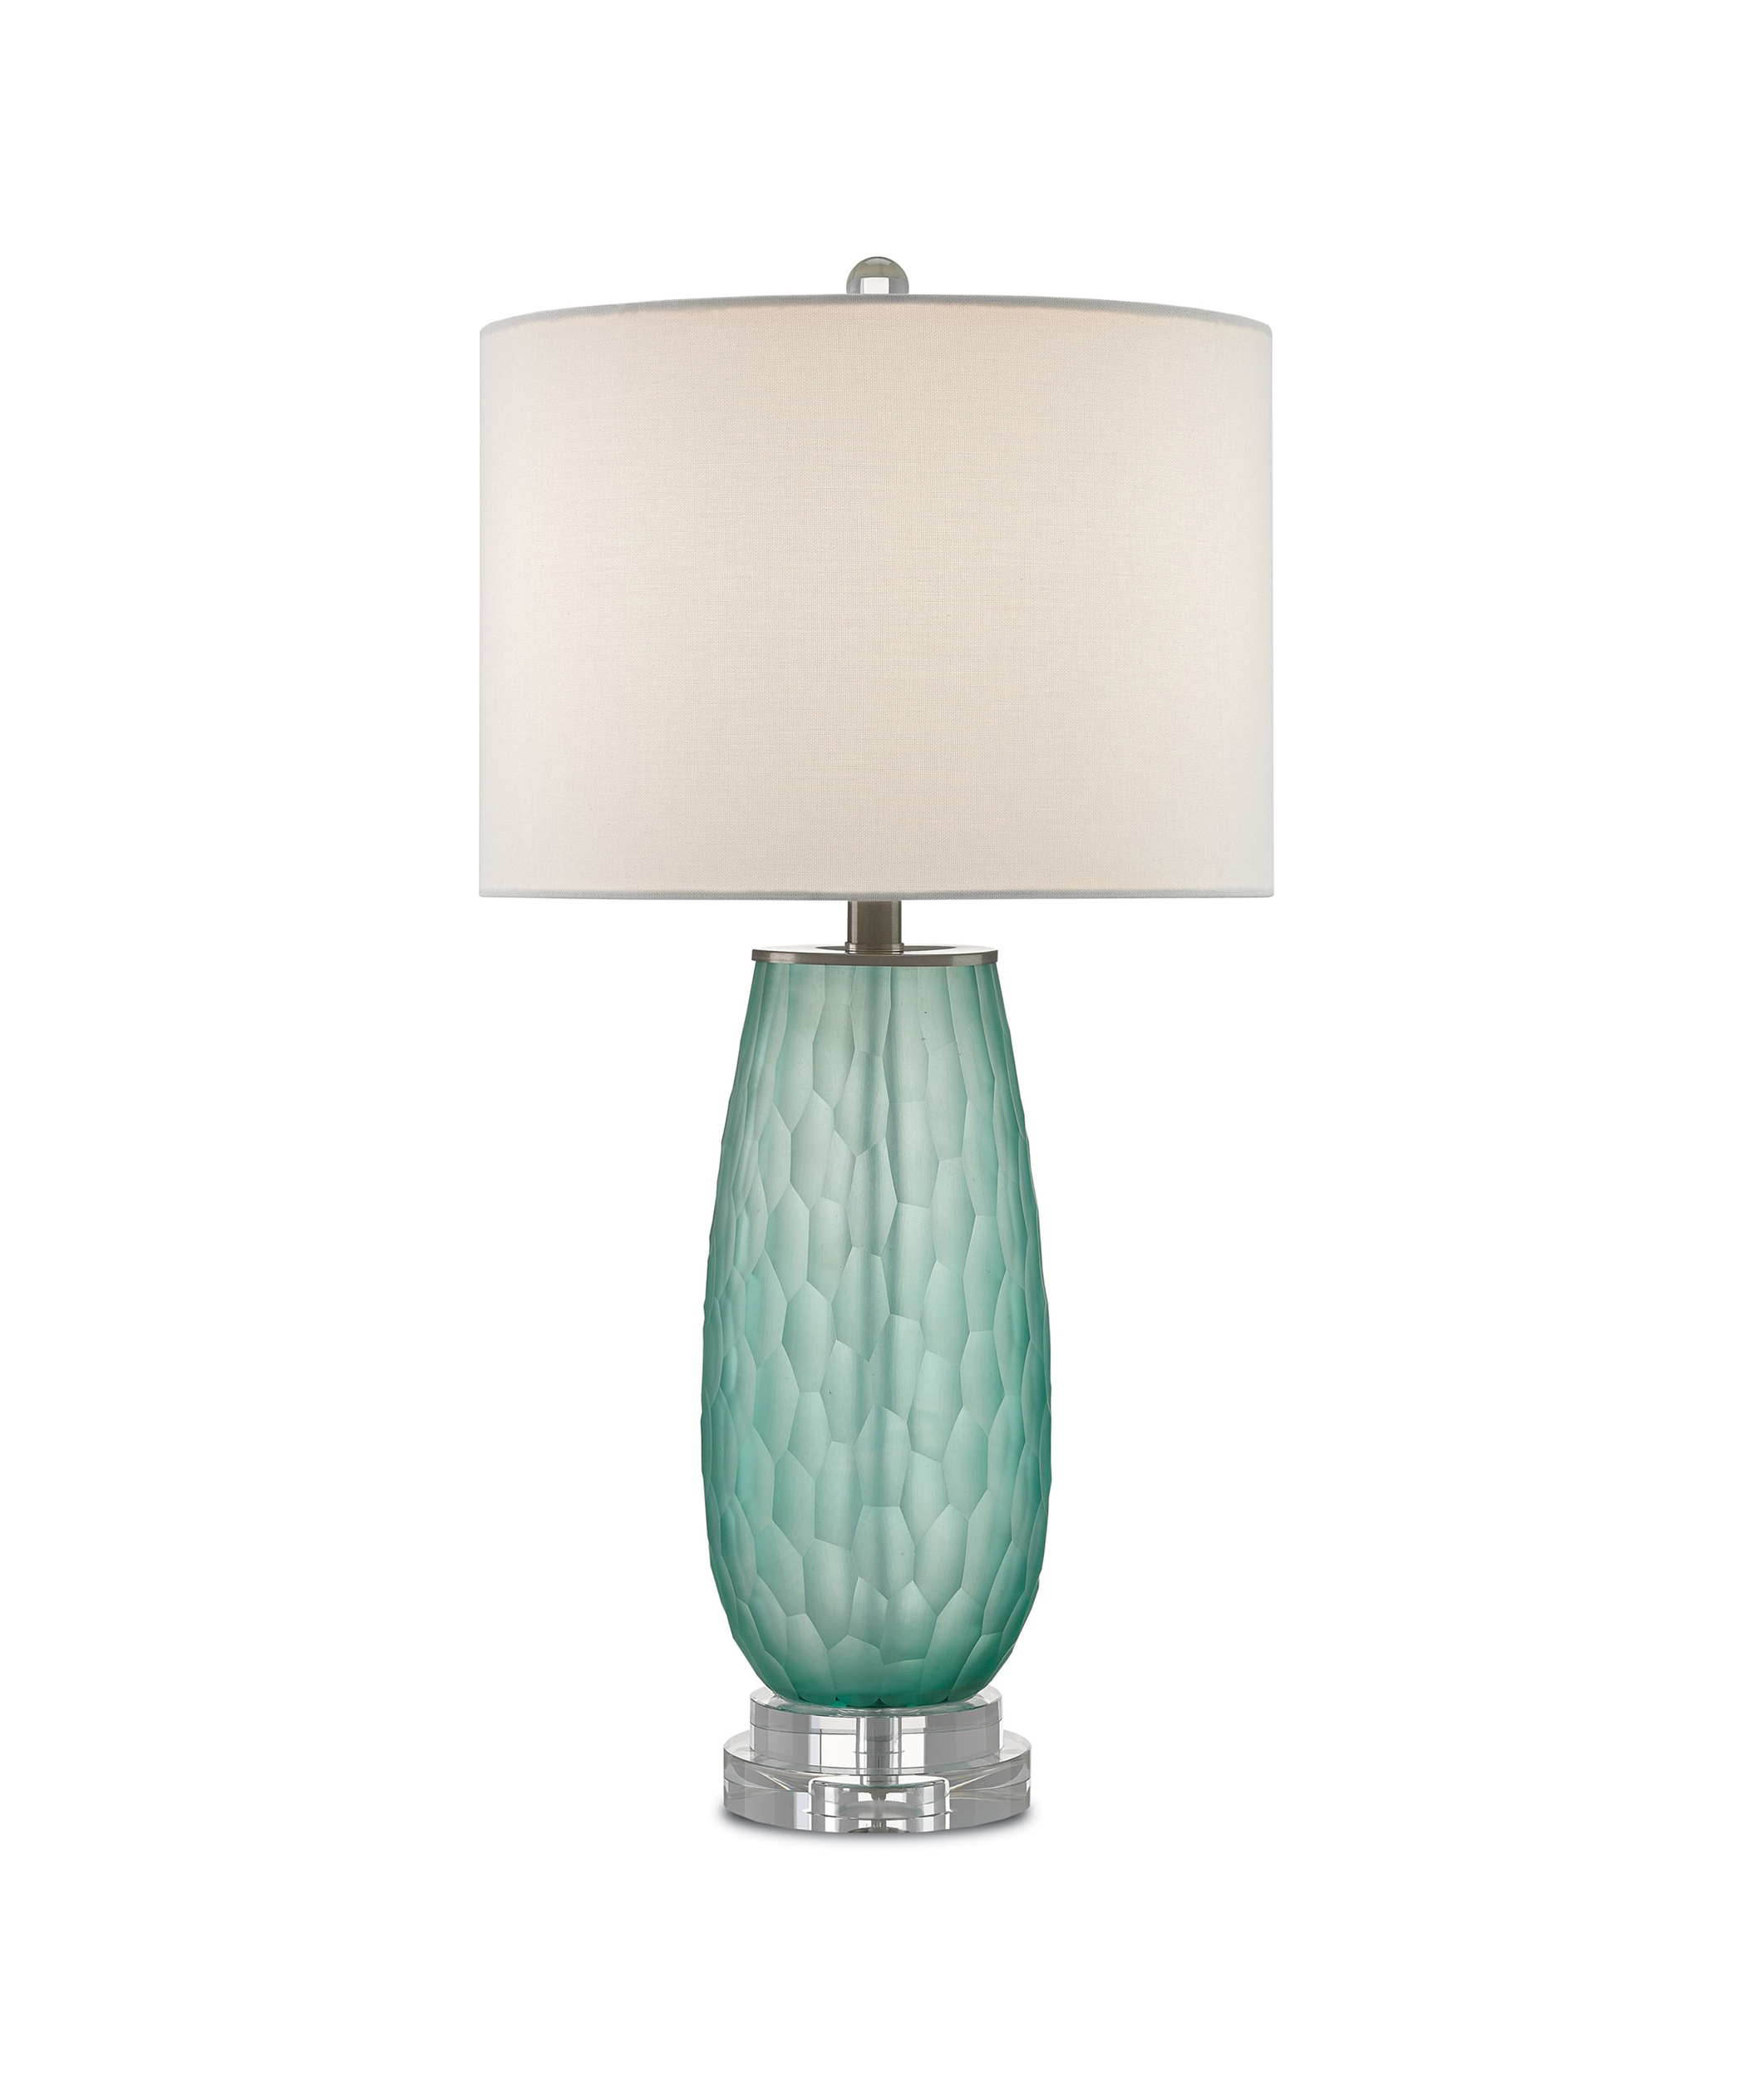 Aali Table Lamp